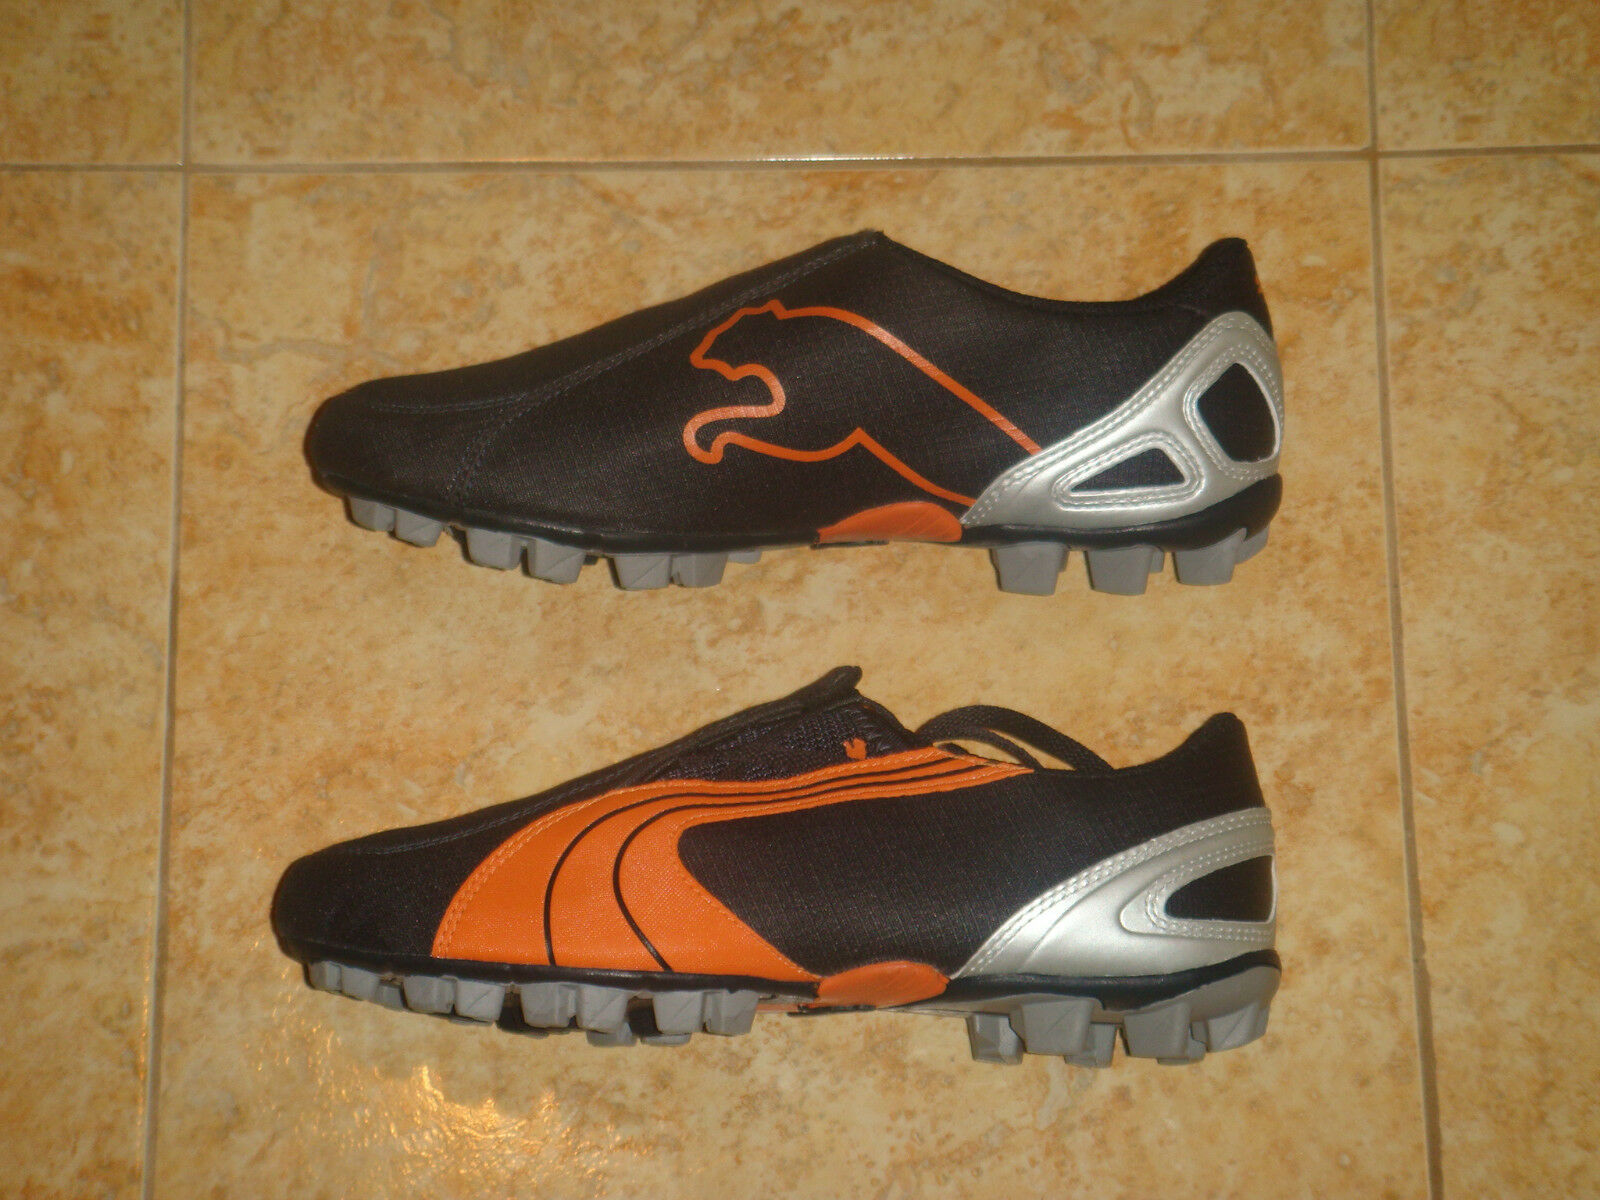 Puma Soccer Boots Boys V 5.06 Football Hard Ground Kids Shoe